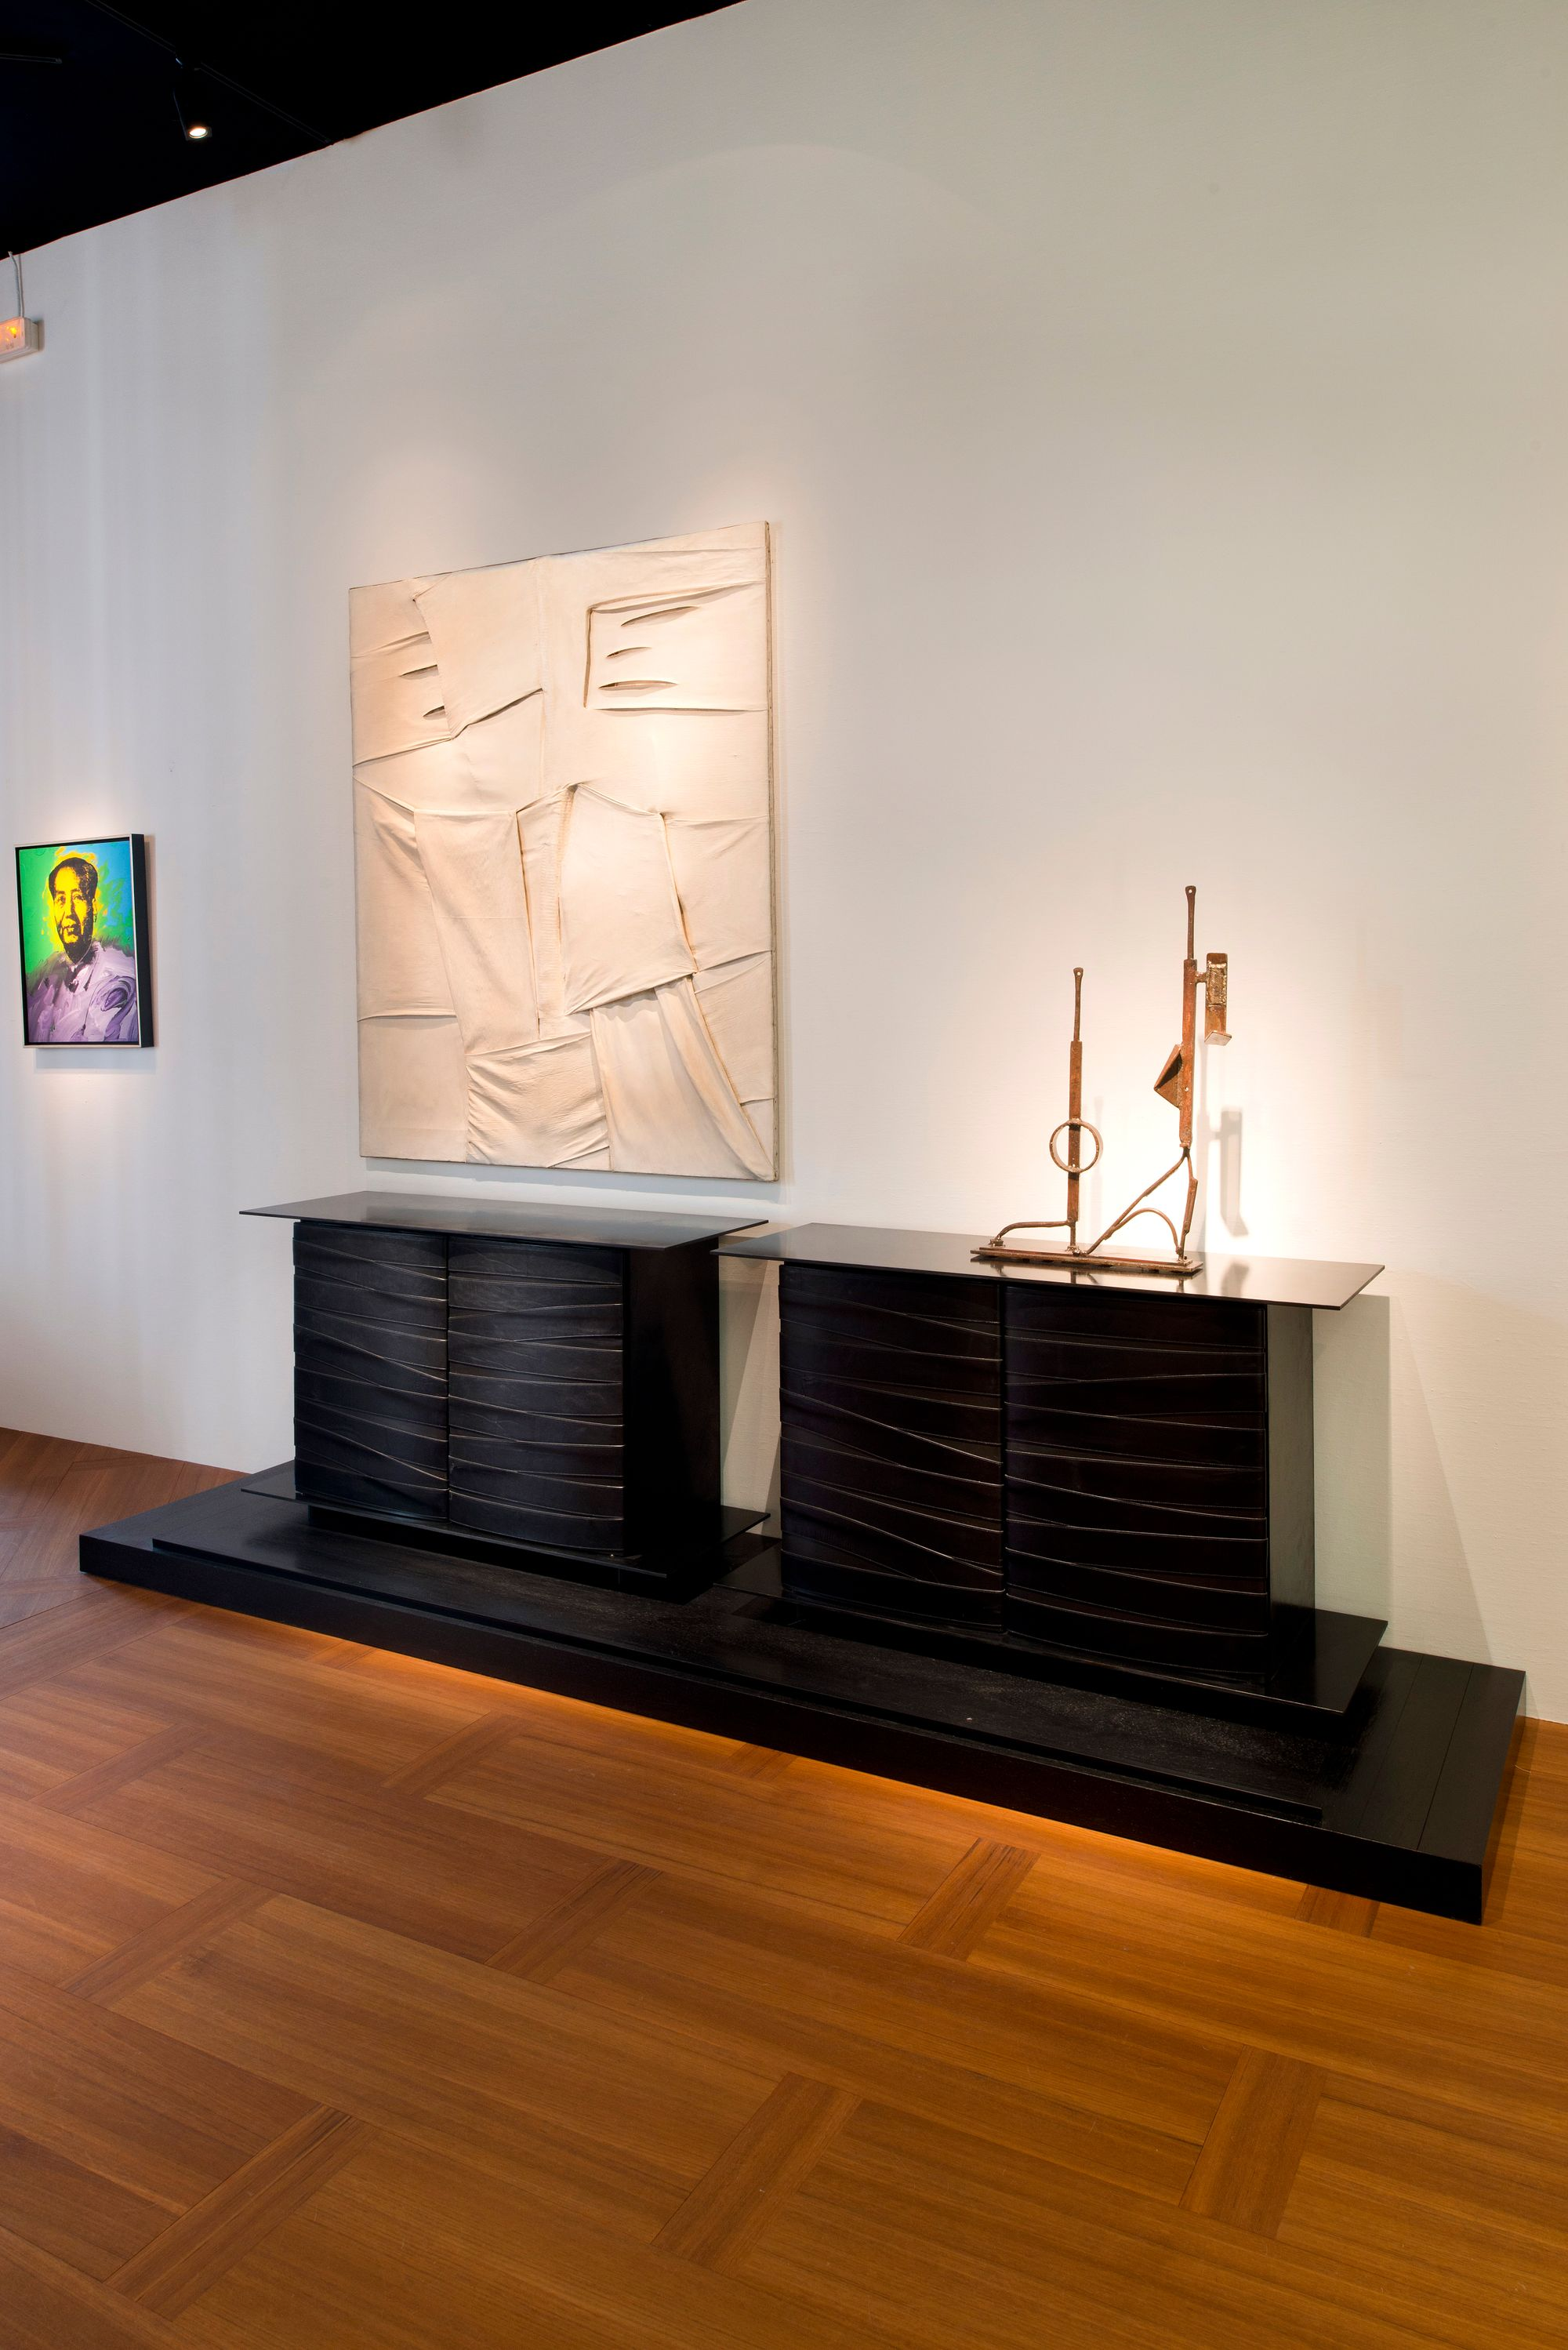 Project Image for Exhibition of Series 2 (bronze boxes)